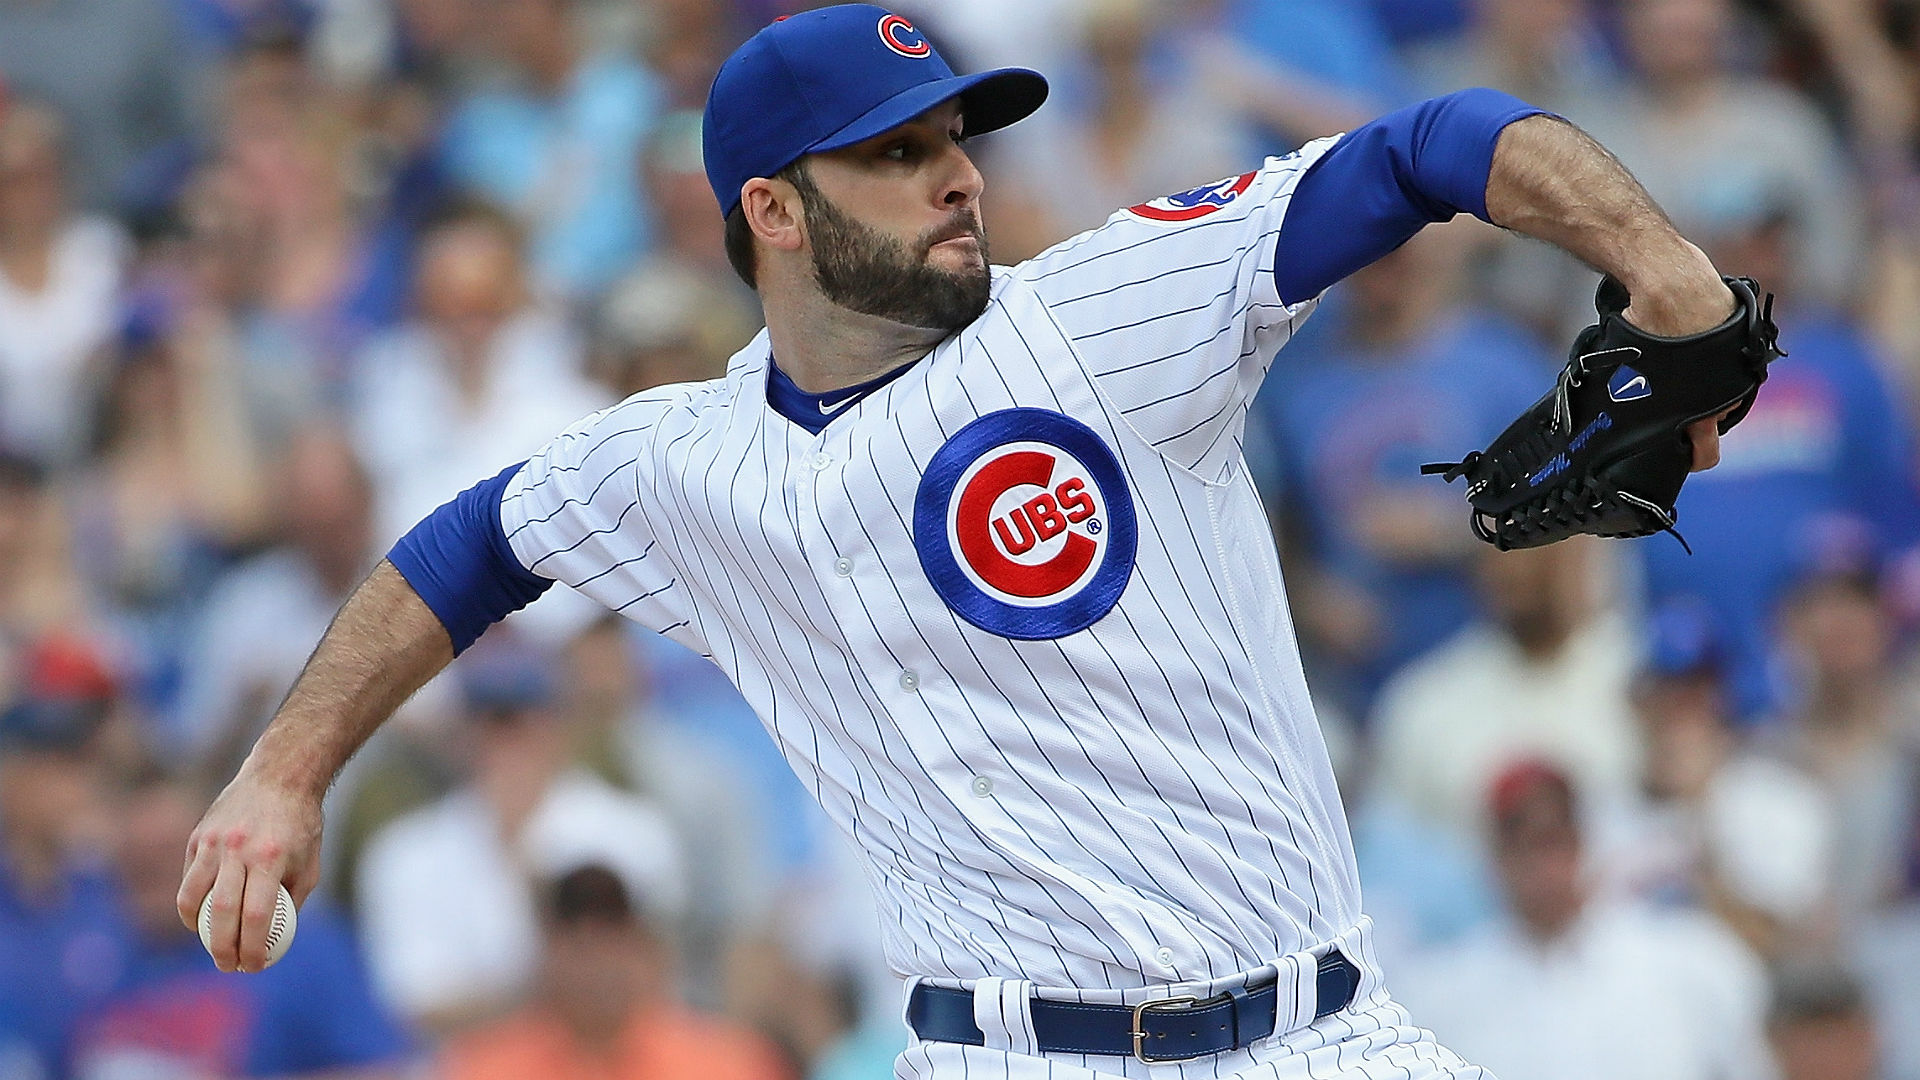 Morrow's surgery may change the Cubs' plans in the free agent reliever market, according to ESPN.